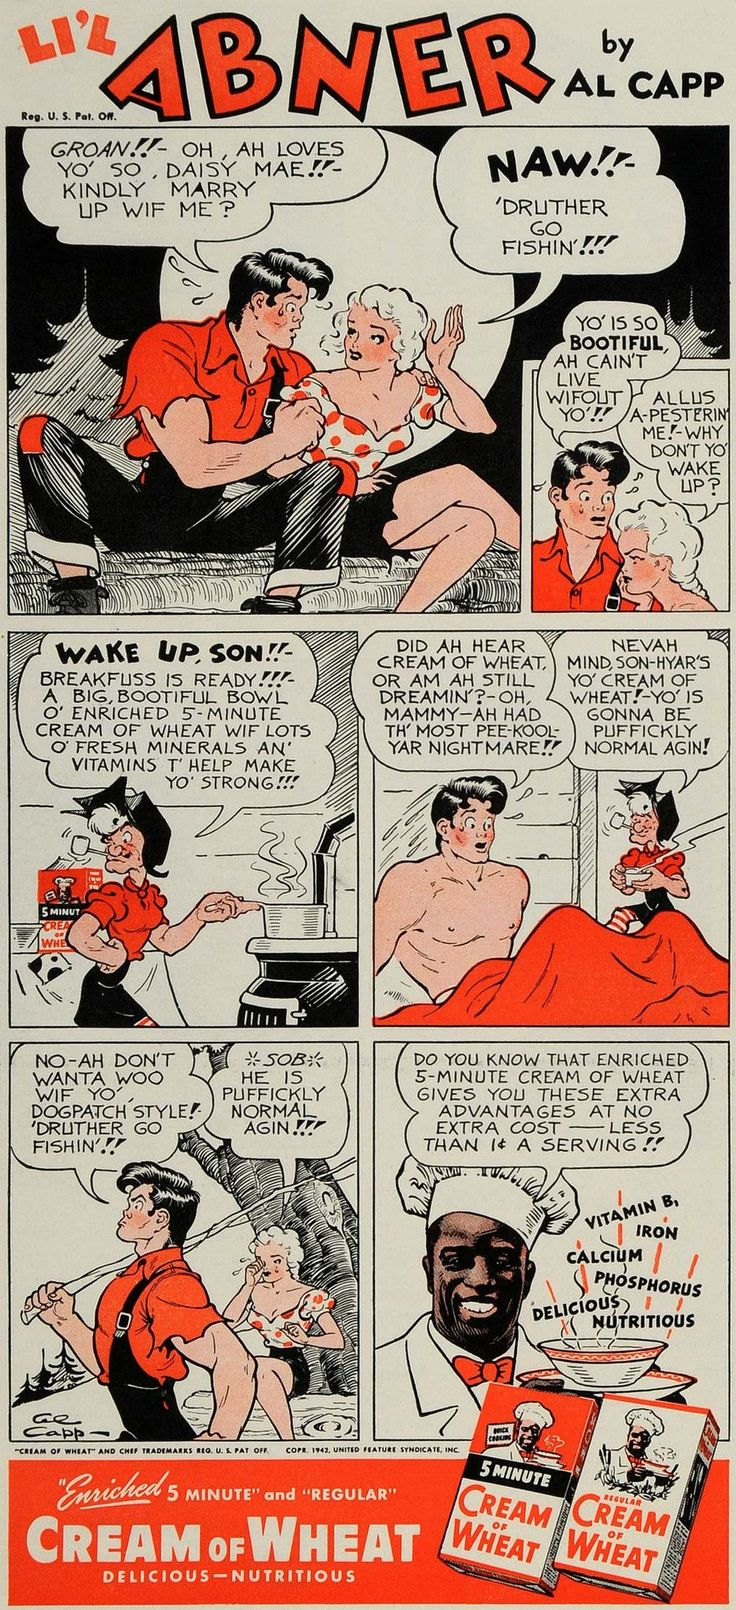 1942 Ad Cream of Wheat Al Capp Lil Abner Comic Strip - ORIGINAL ADVERTISING GH4 - Period Paper